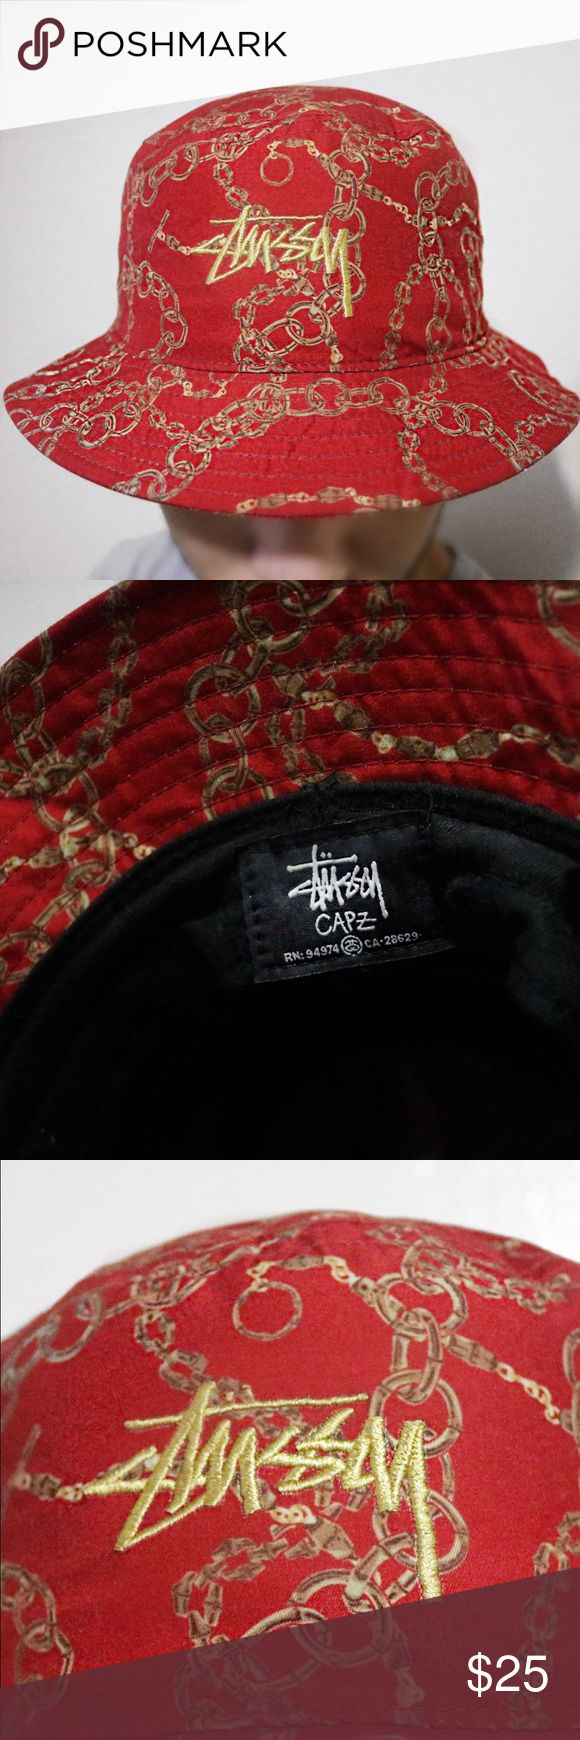 Red Goldlink Stussy Bucket Hat Only worn once! Great condition. Stussy Accessories Hats